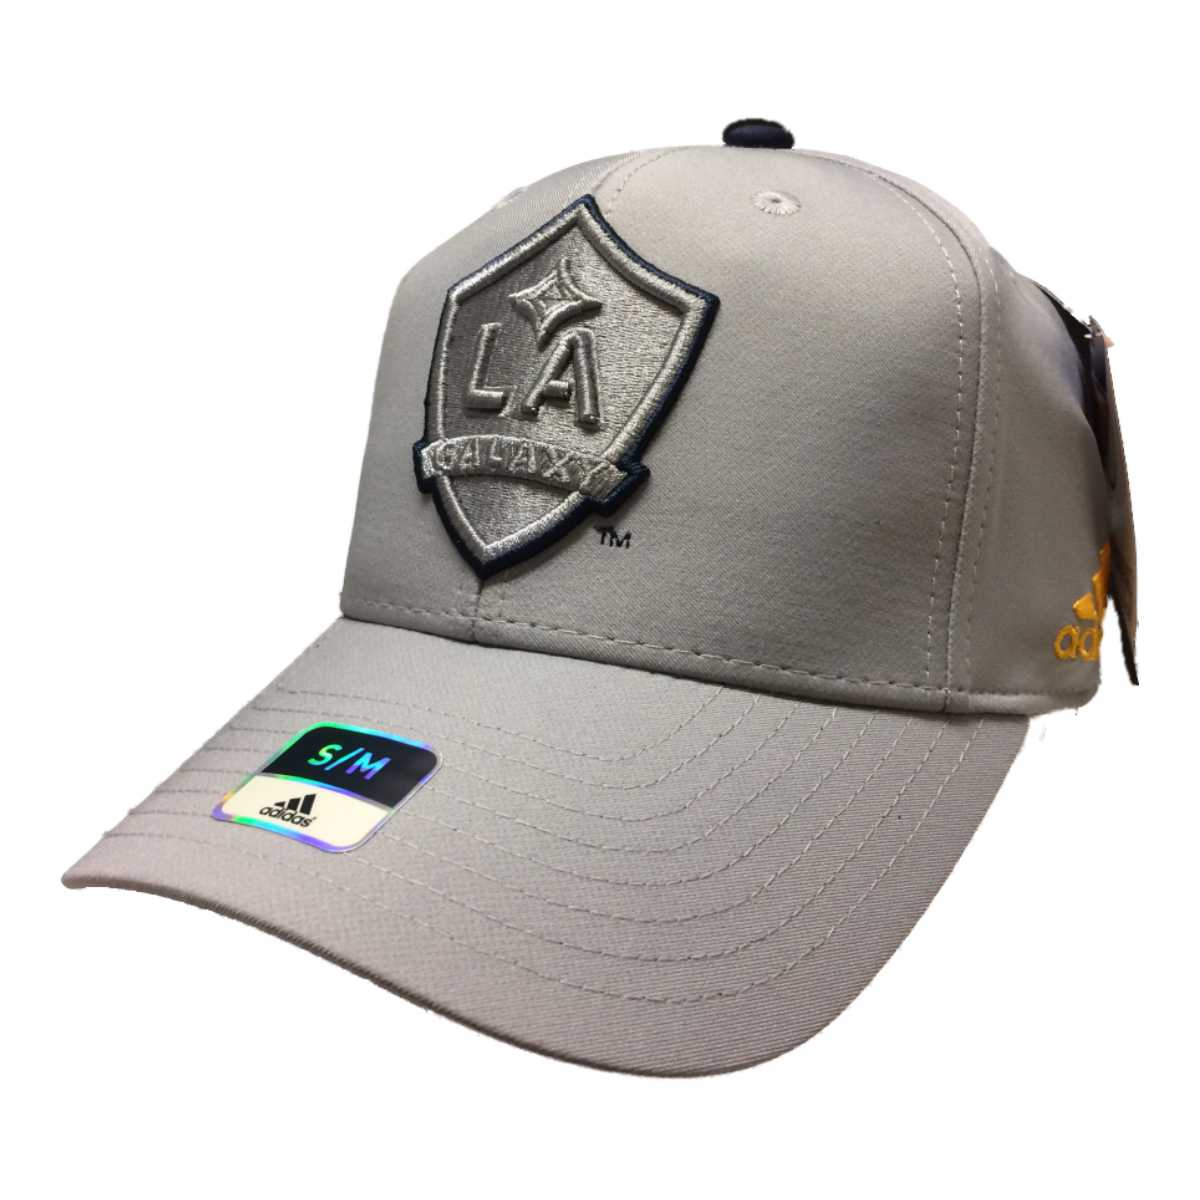 Details about Los Angeles Galaxy Adidas SuperFlex Structured Fitted  Baseball Hat Cap (S M) cf4458cfc47